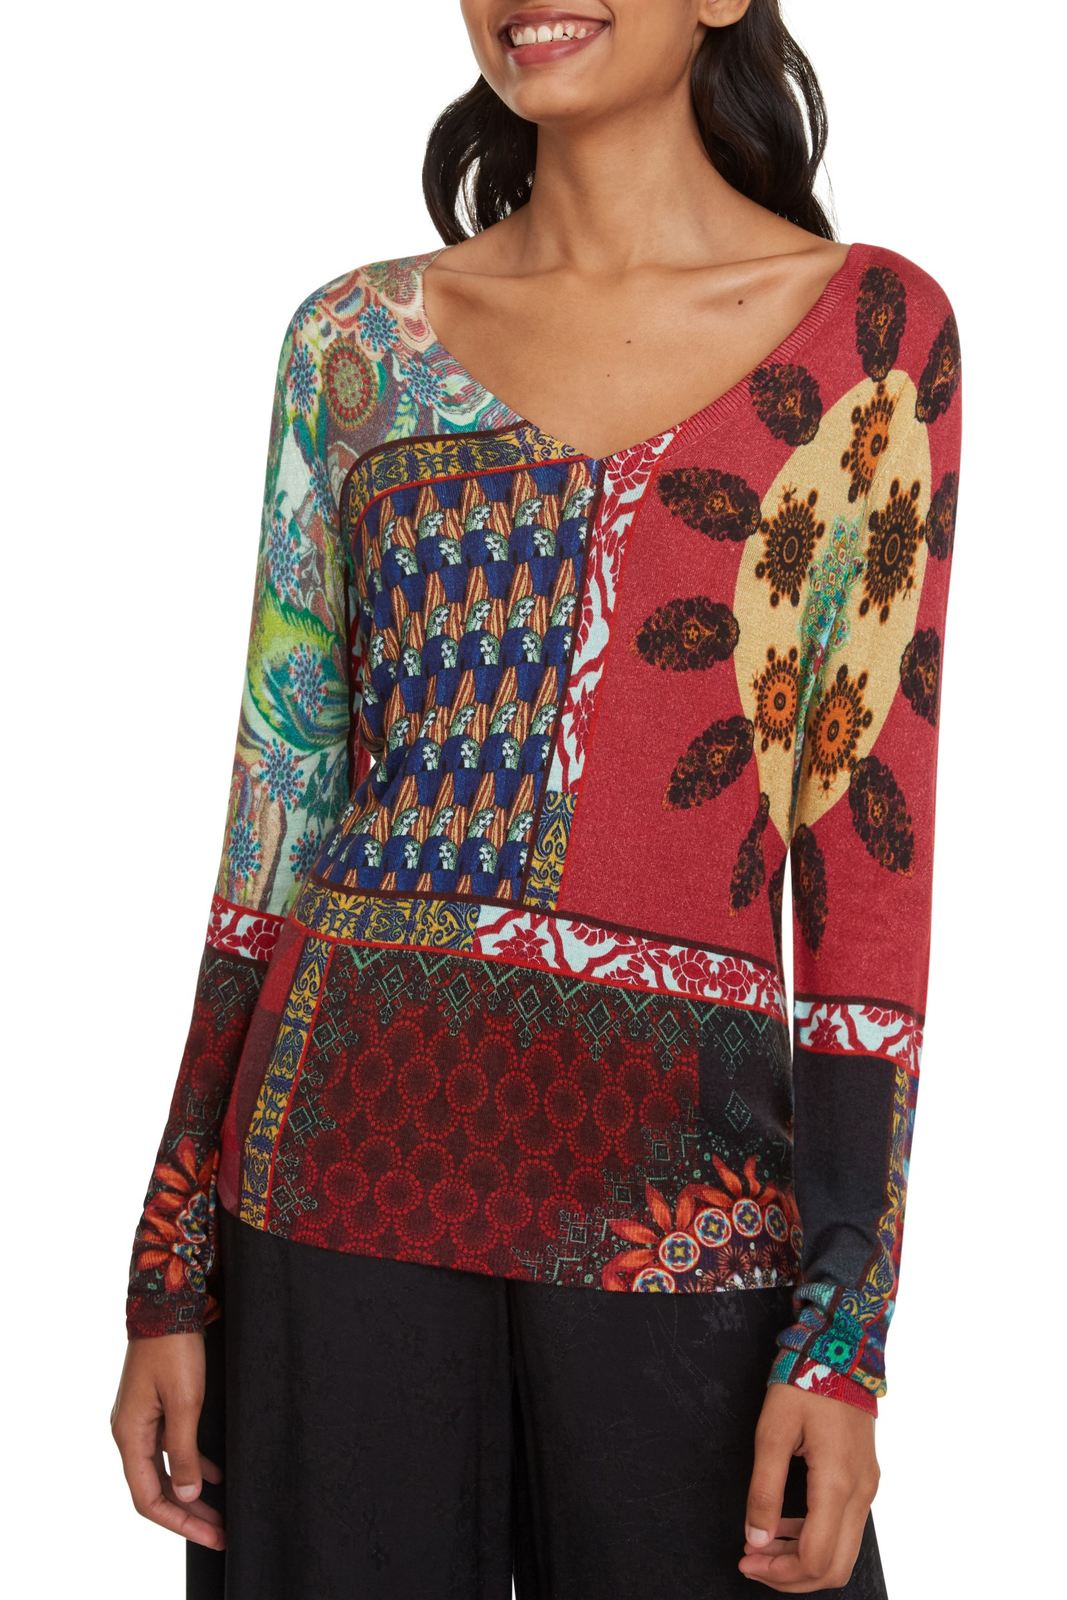 Desigual multicolor sweater Jers Michelle